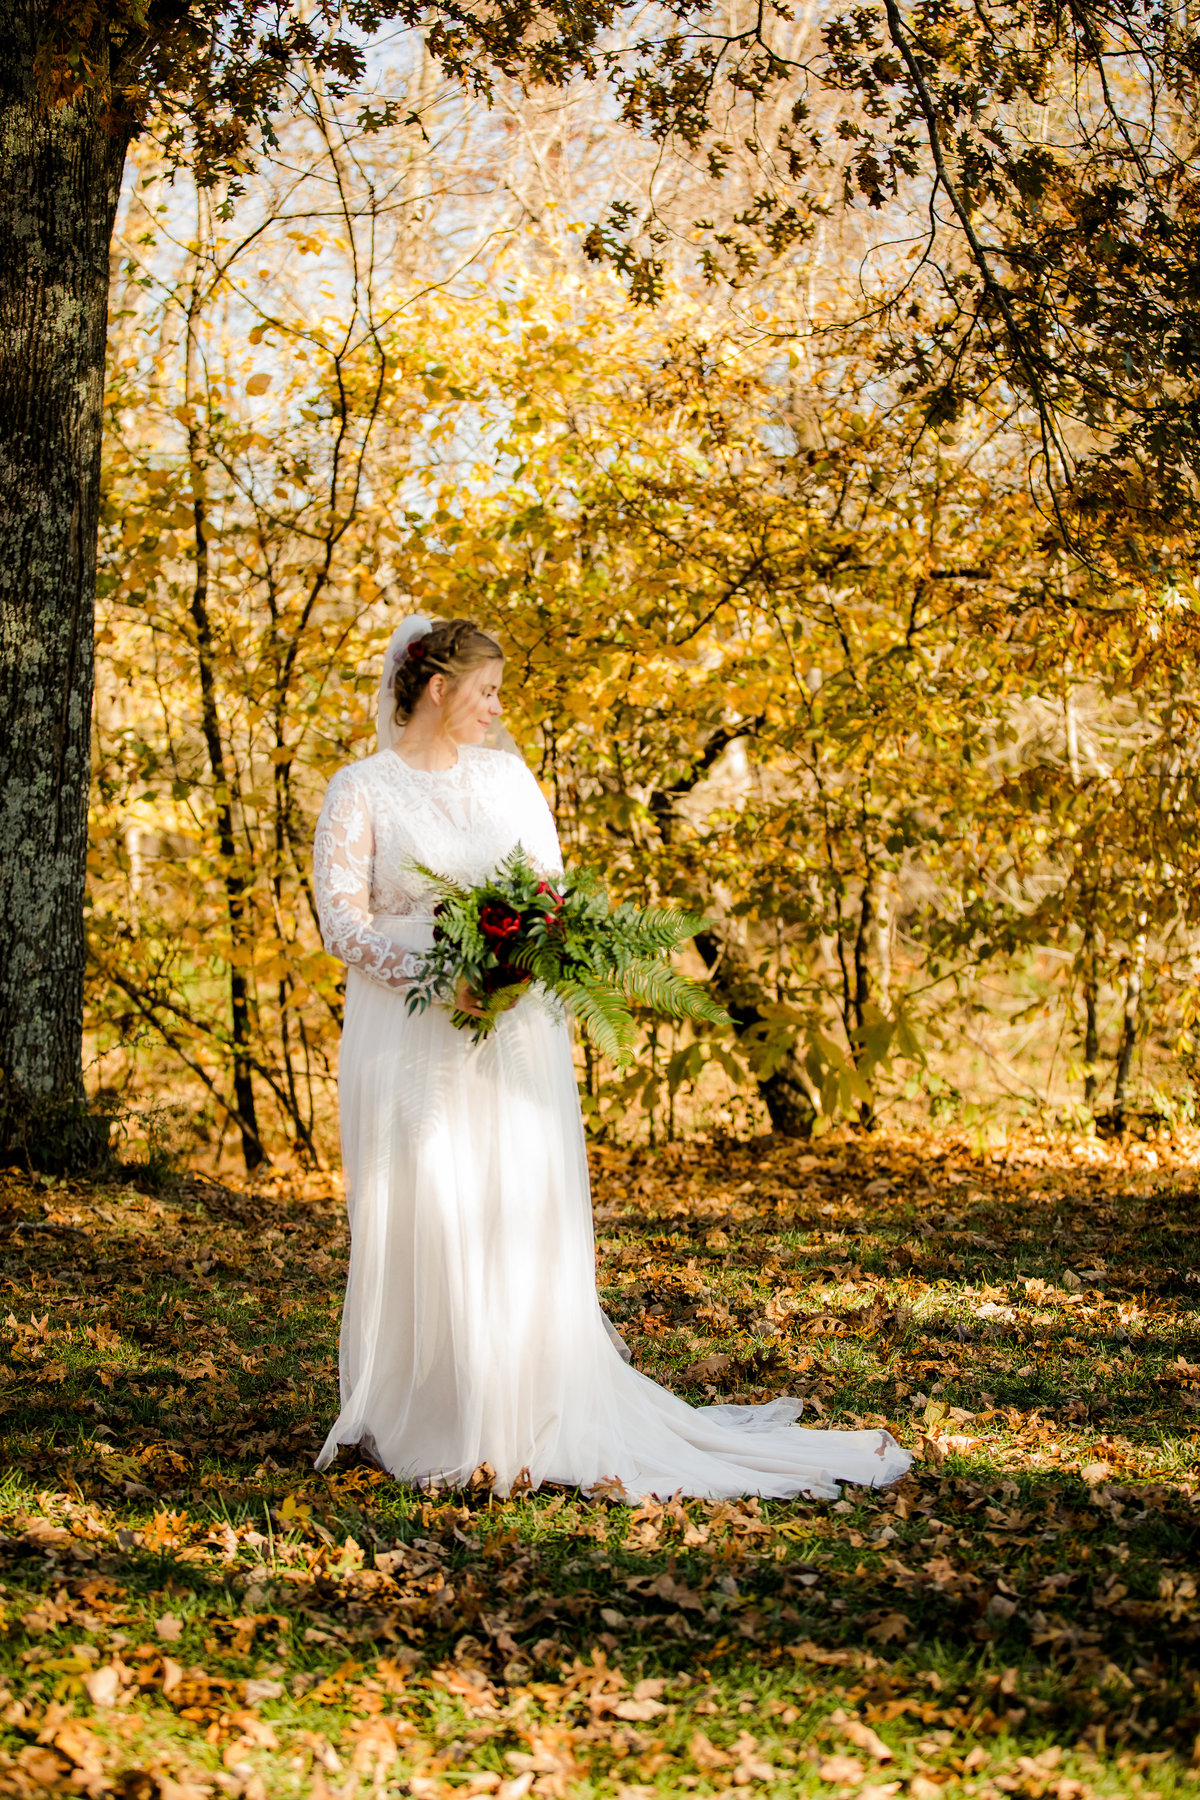 Cactus Creek Barn - Dickson Wedding - Dickson TN - Outdoor Weddings - Outdoor Wedding - Nashville Wedding - Nashville Weddings - Nashville Wedding Photographer - Nashville Wedding Photographers107